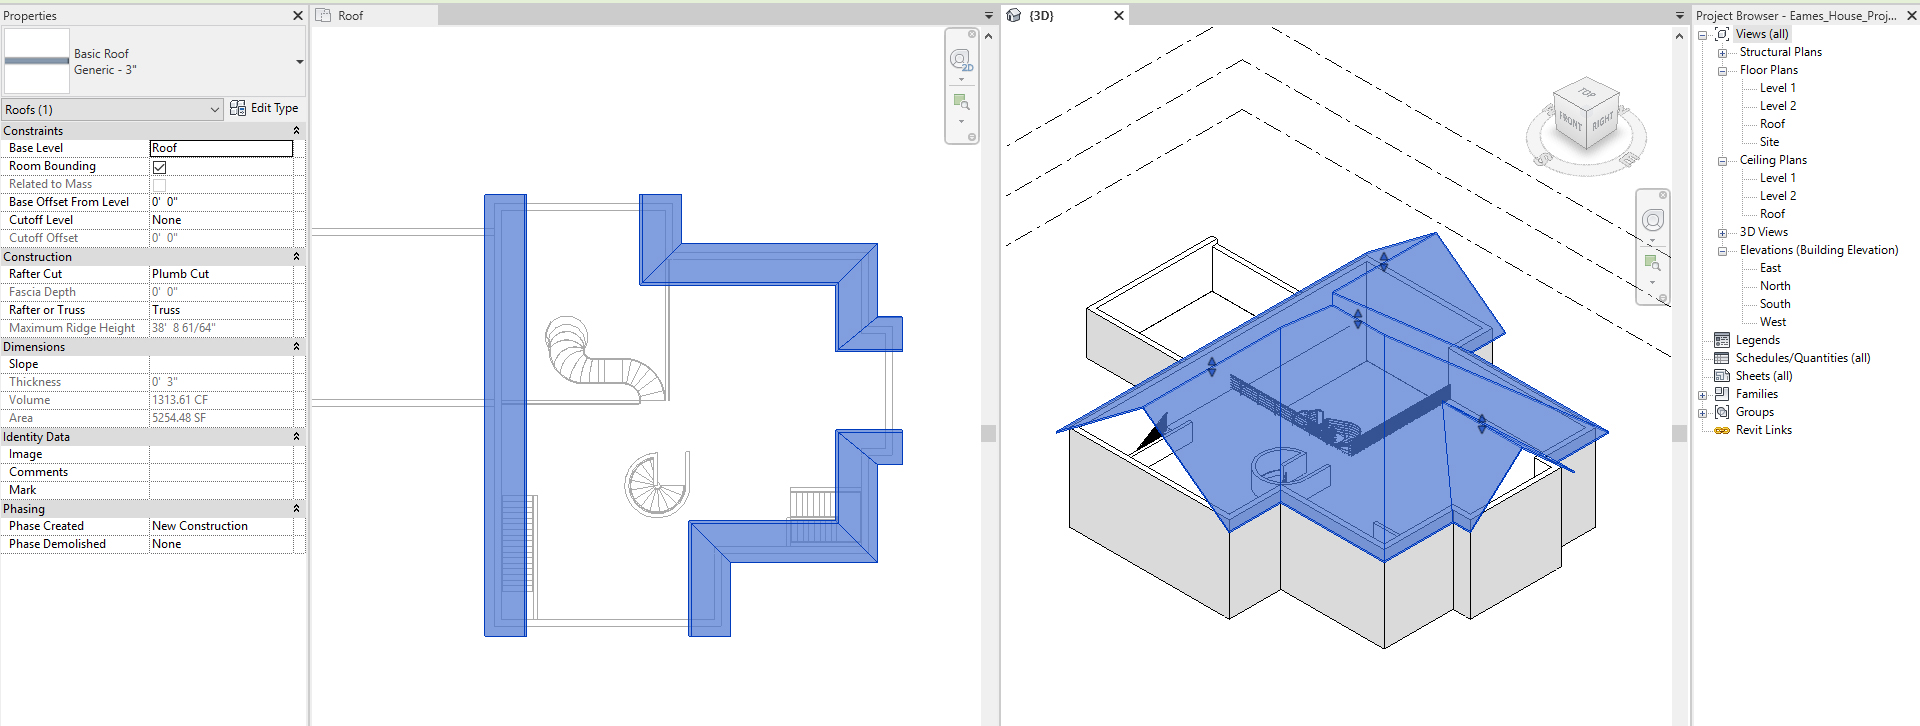 It shows the resulting image after creating a hip roof.